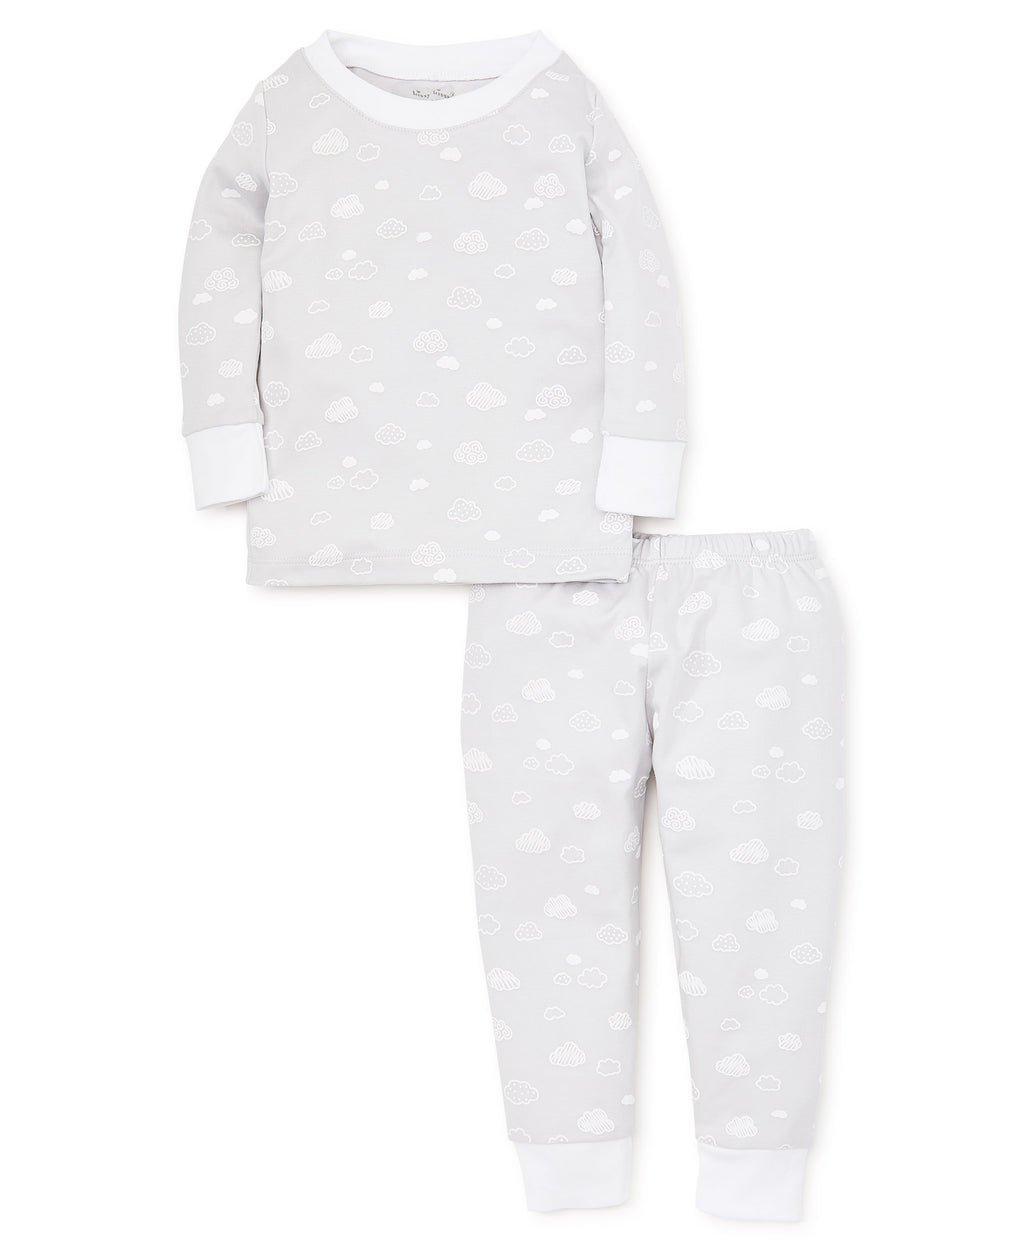 Cotton Clouds Silver Pajama Set